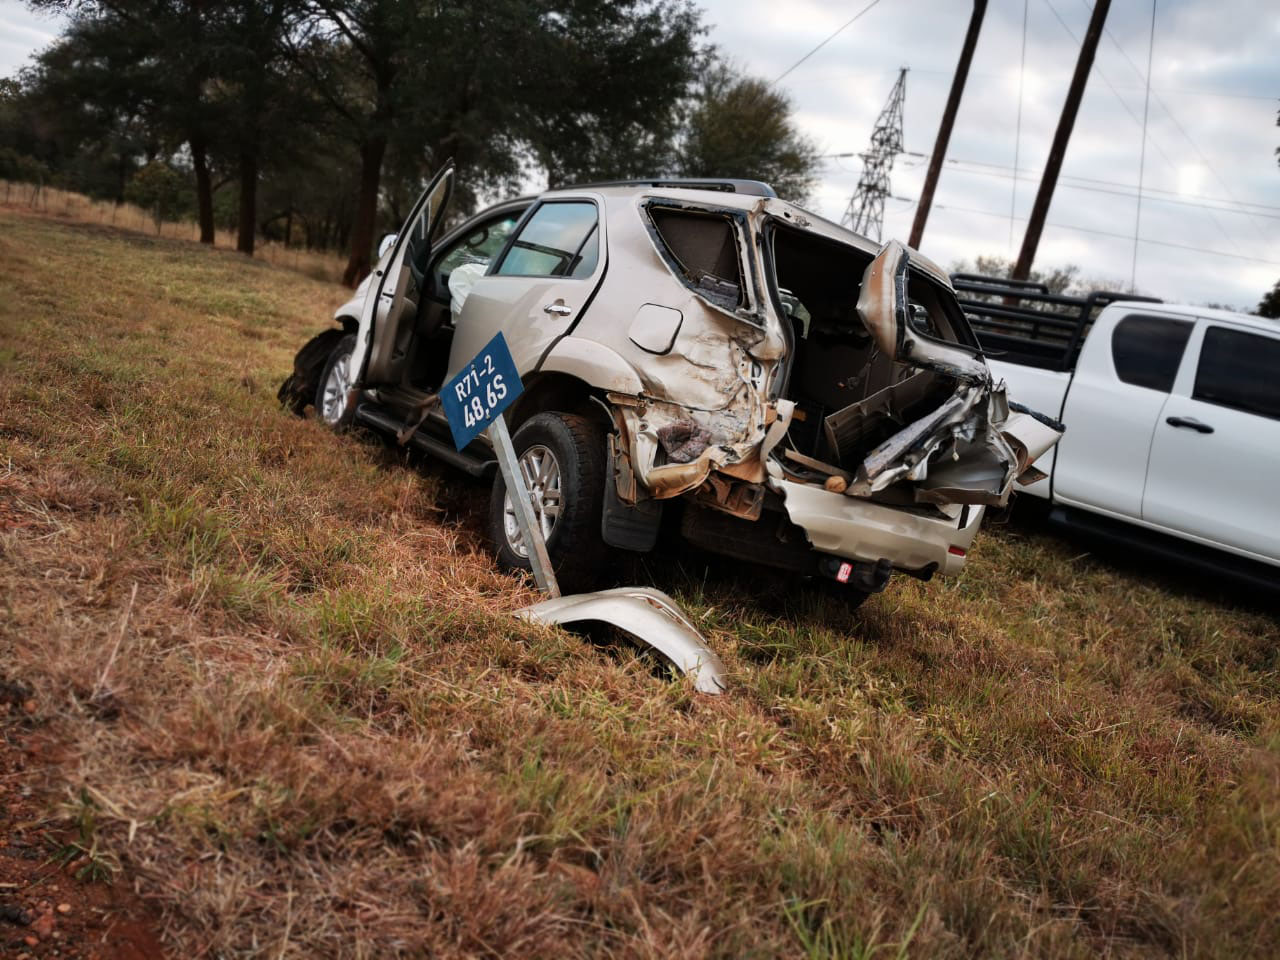 A car involved in an accident in Limpopo.